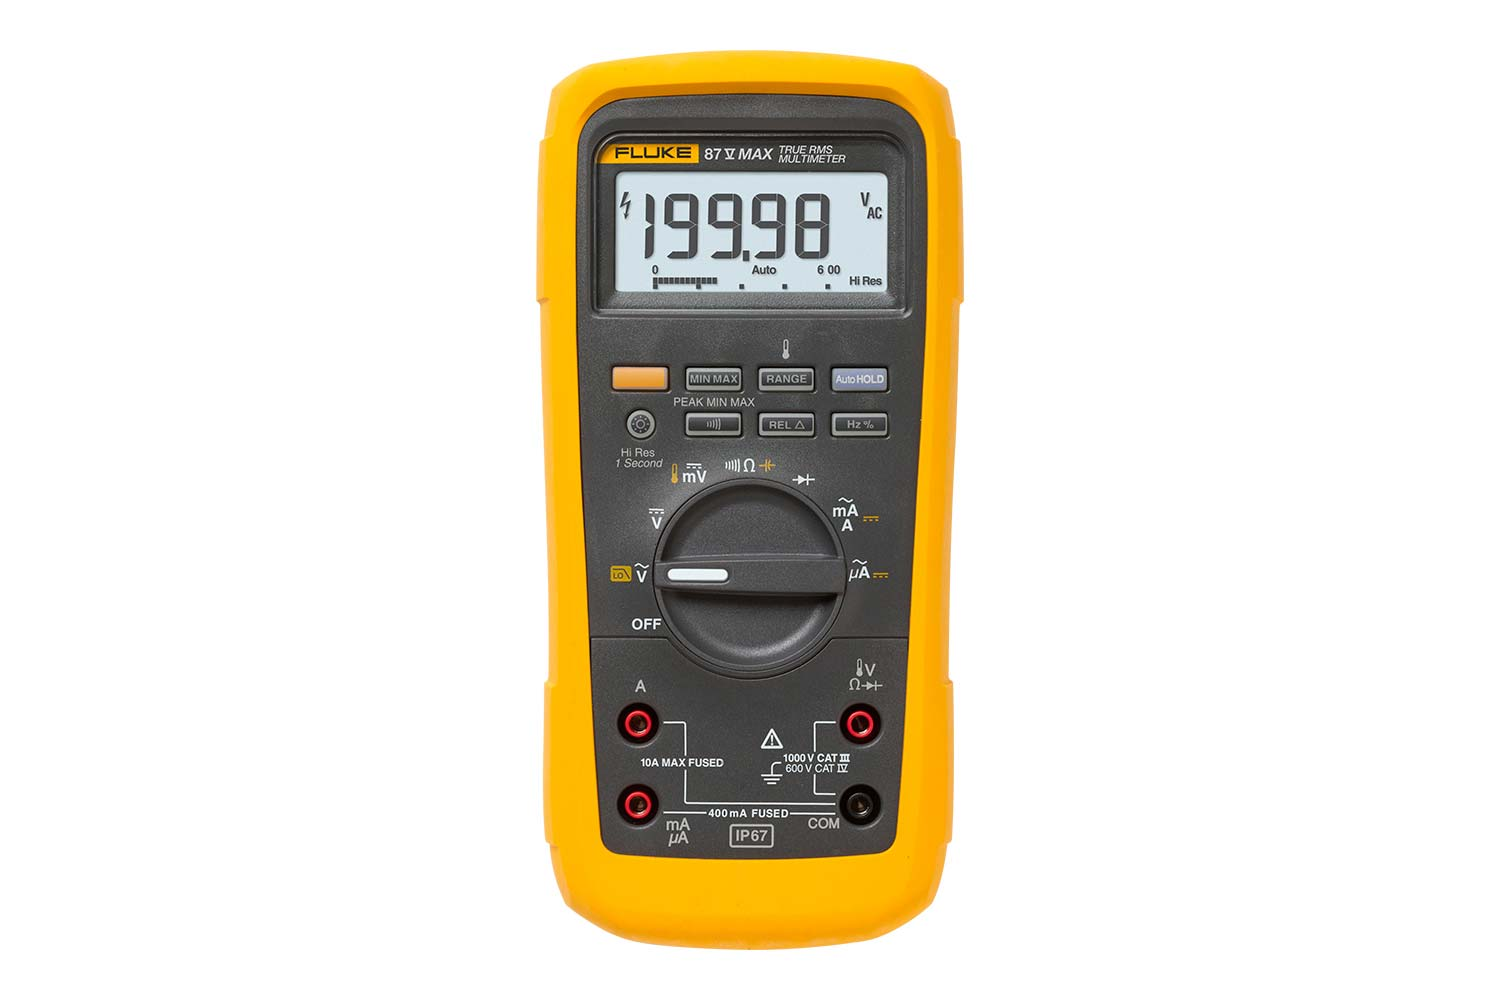 Fluke 87V Max True-rms -digitaalinen yleismittari